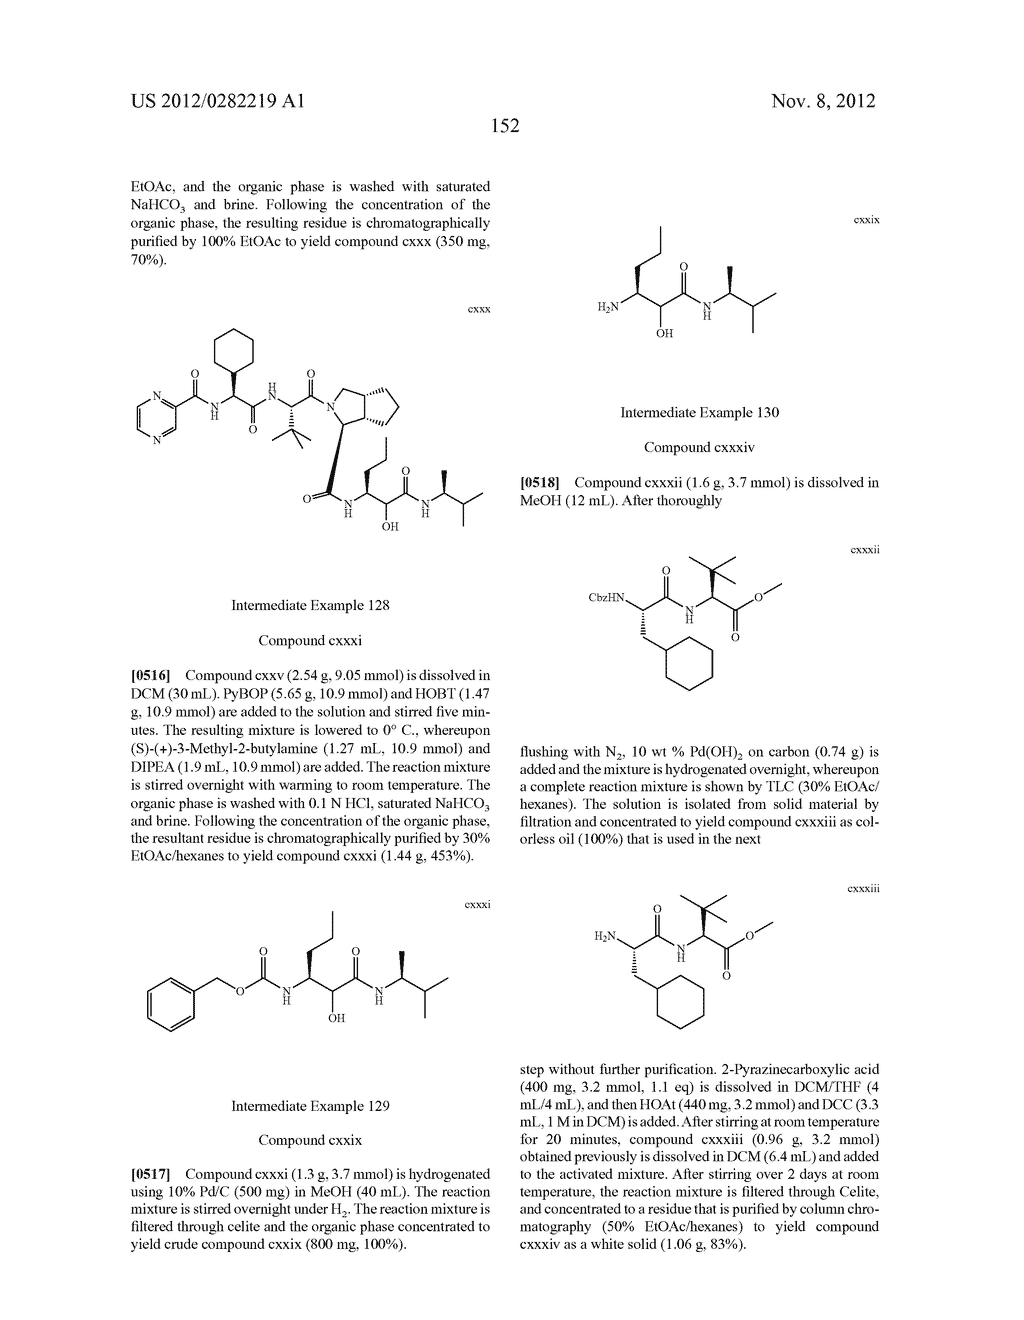 PEPTIDOMIMETIC PROTEASE INHIBITORS - diagram, schematic, and image 167